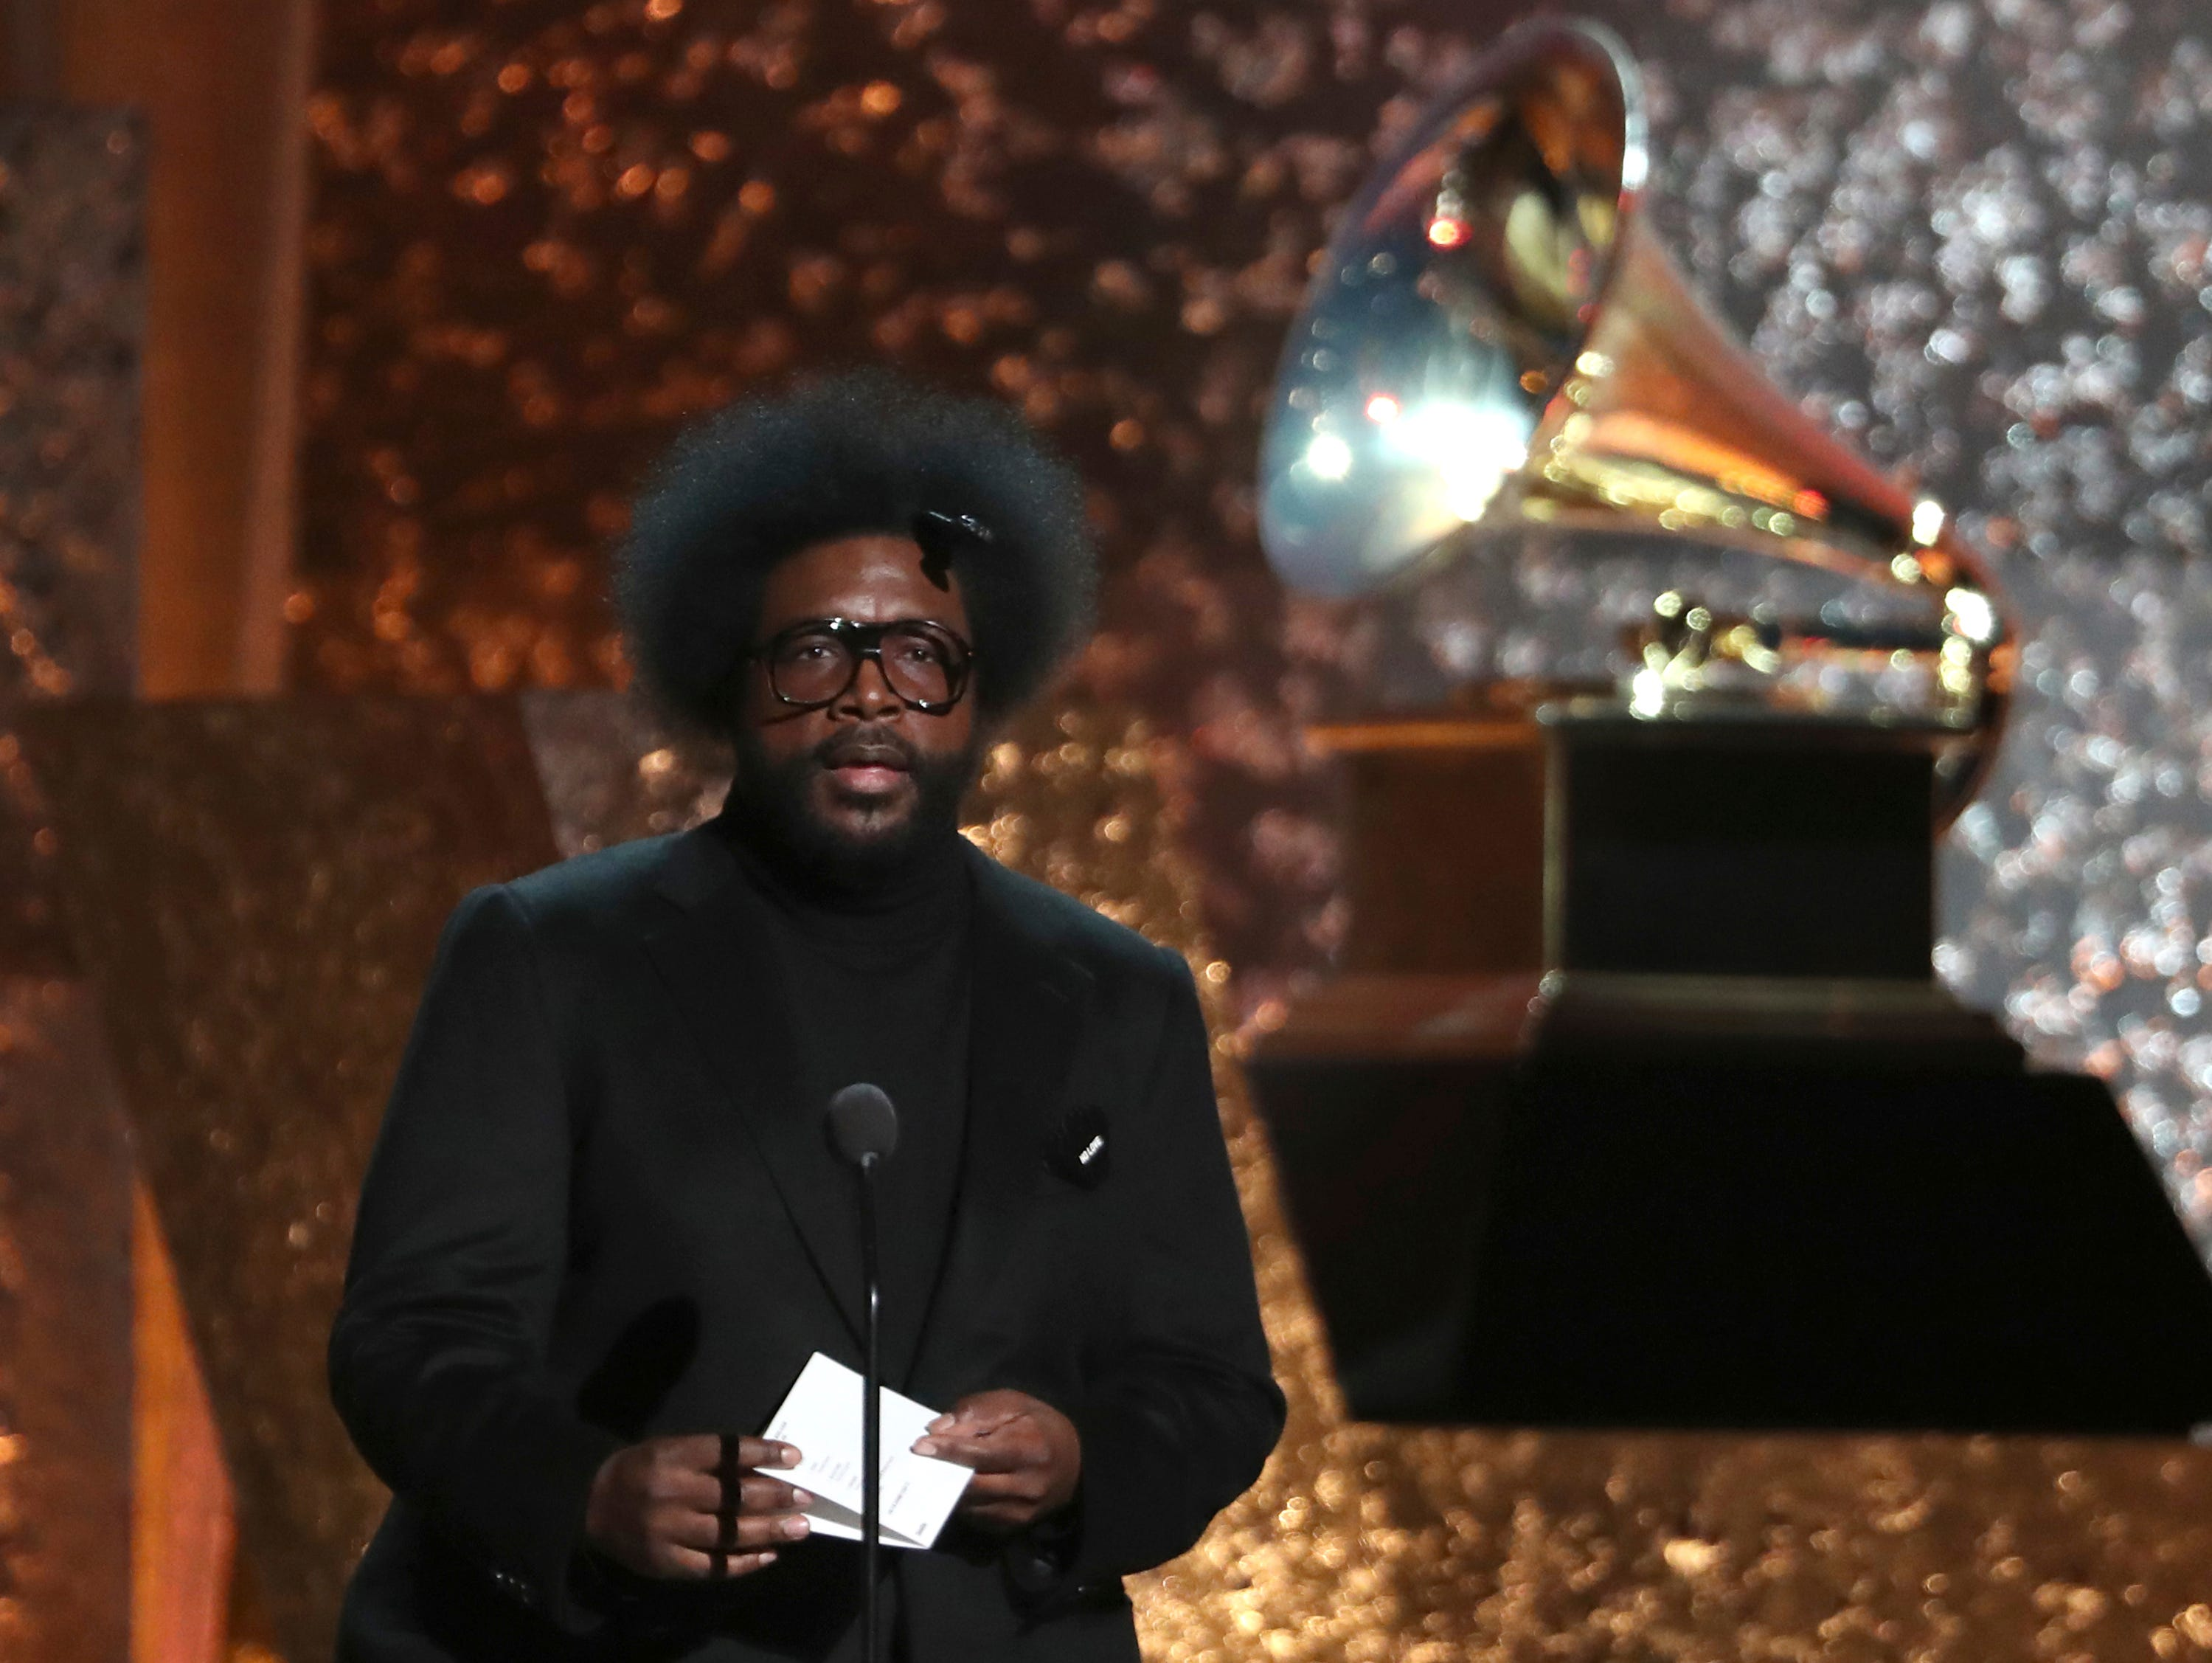 Questlove presents an award at the 61st annual Grammy Awards.